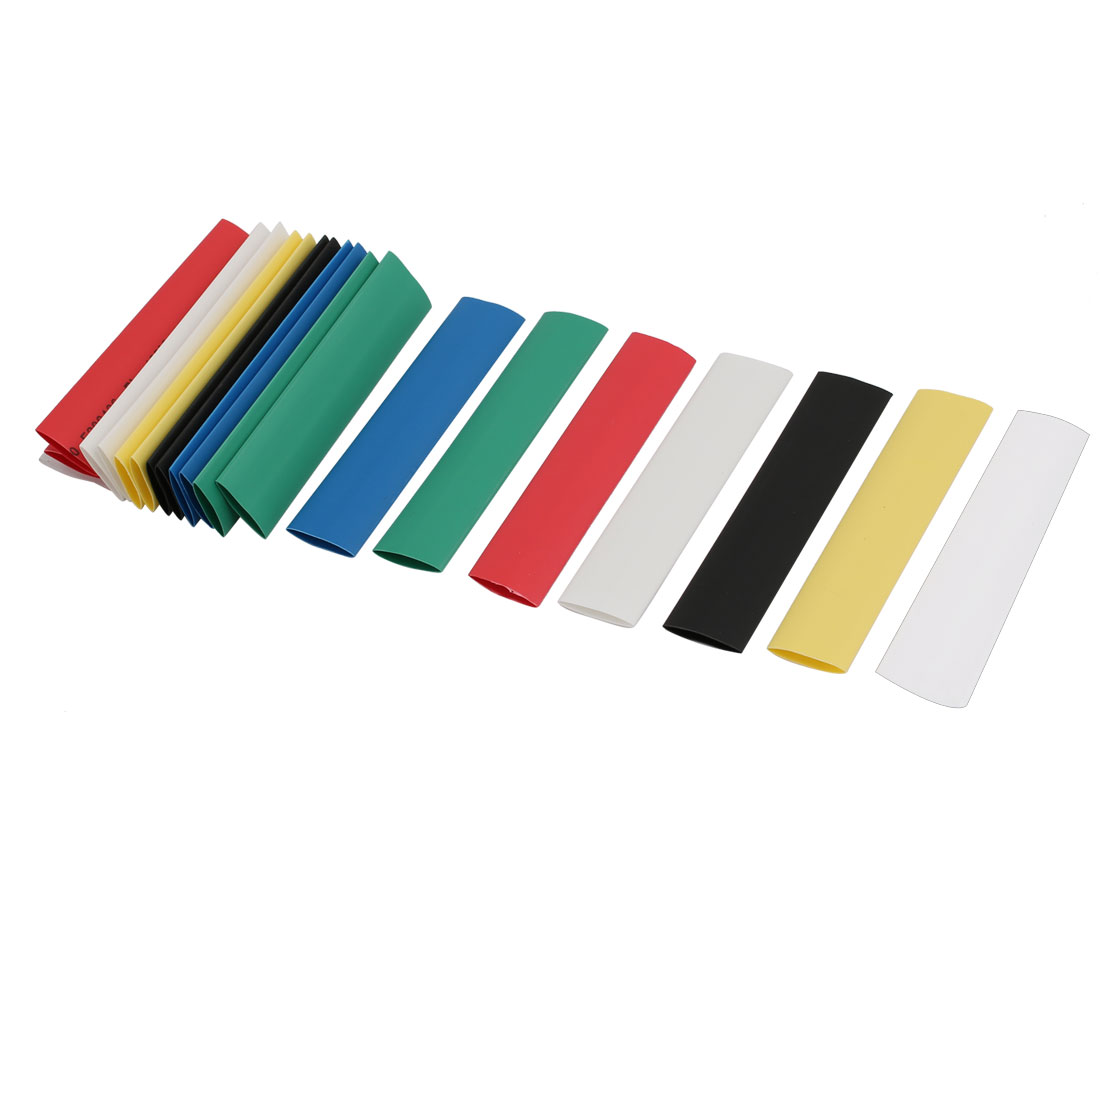 Unique Bargains 12mmx90mm Multi-Colors Insulated Heat Shrink Tube Sleeving Wrap Wire Kits 105pcs - image 3 of 3